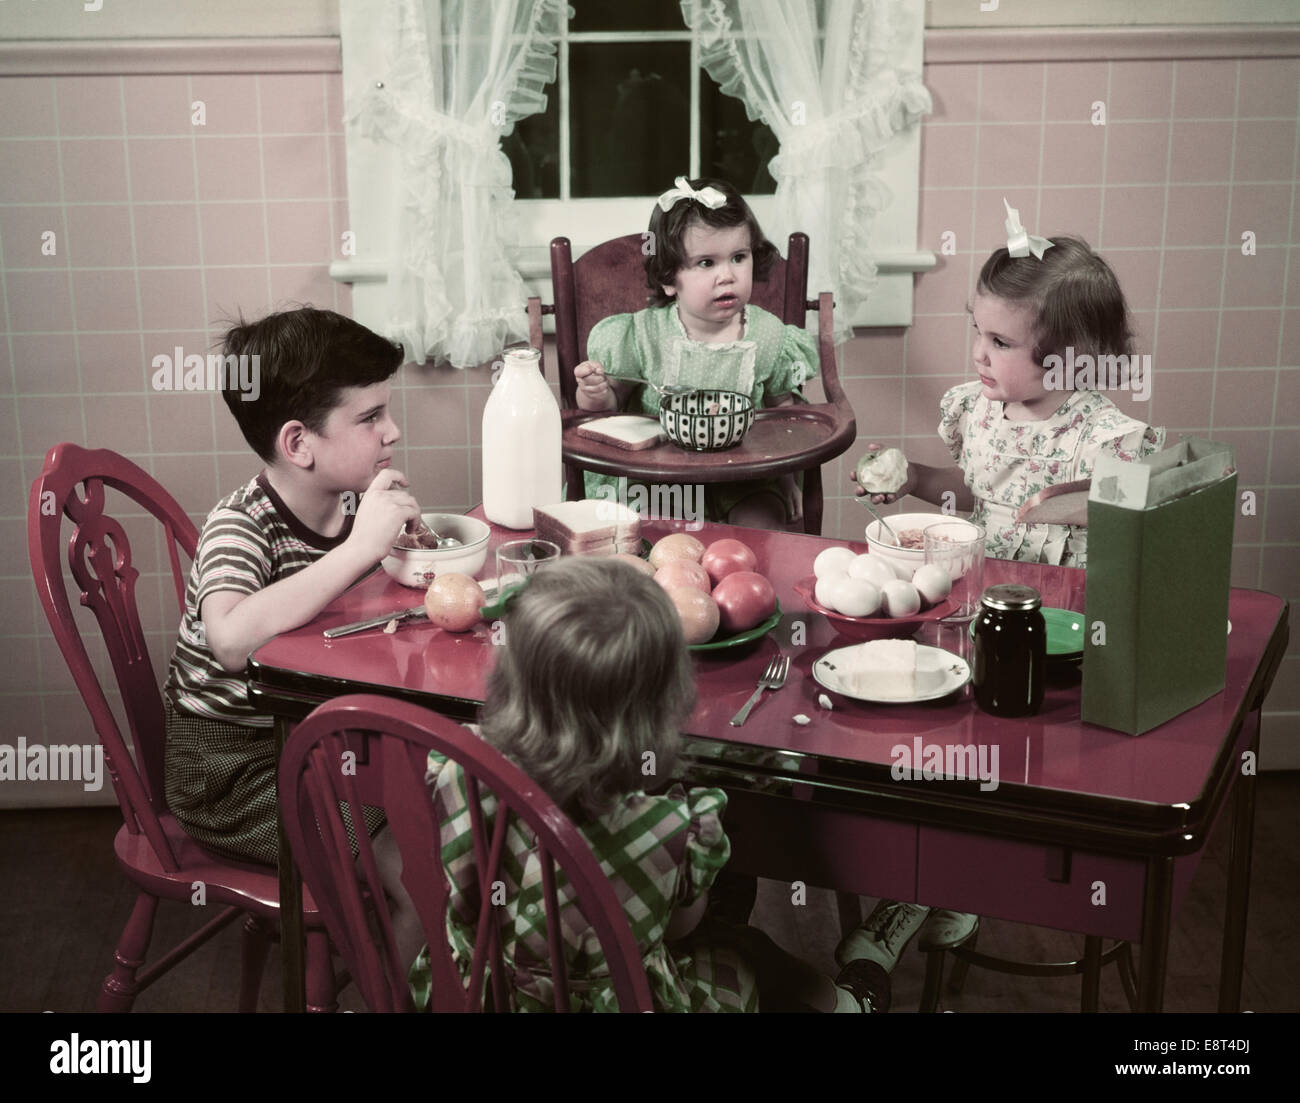 1940s 1950s boy and girls eating breakfast at kitchen table food cereal E8T4DJ